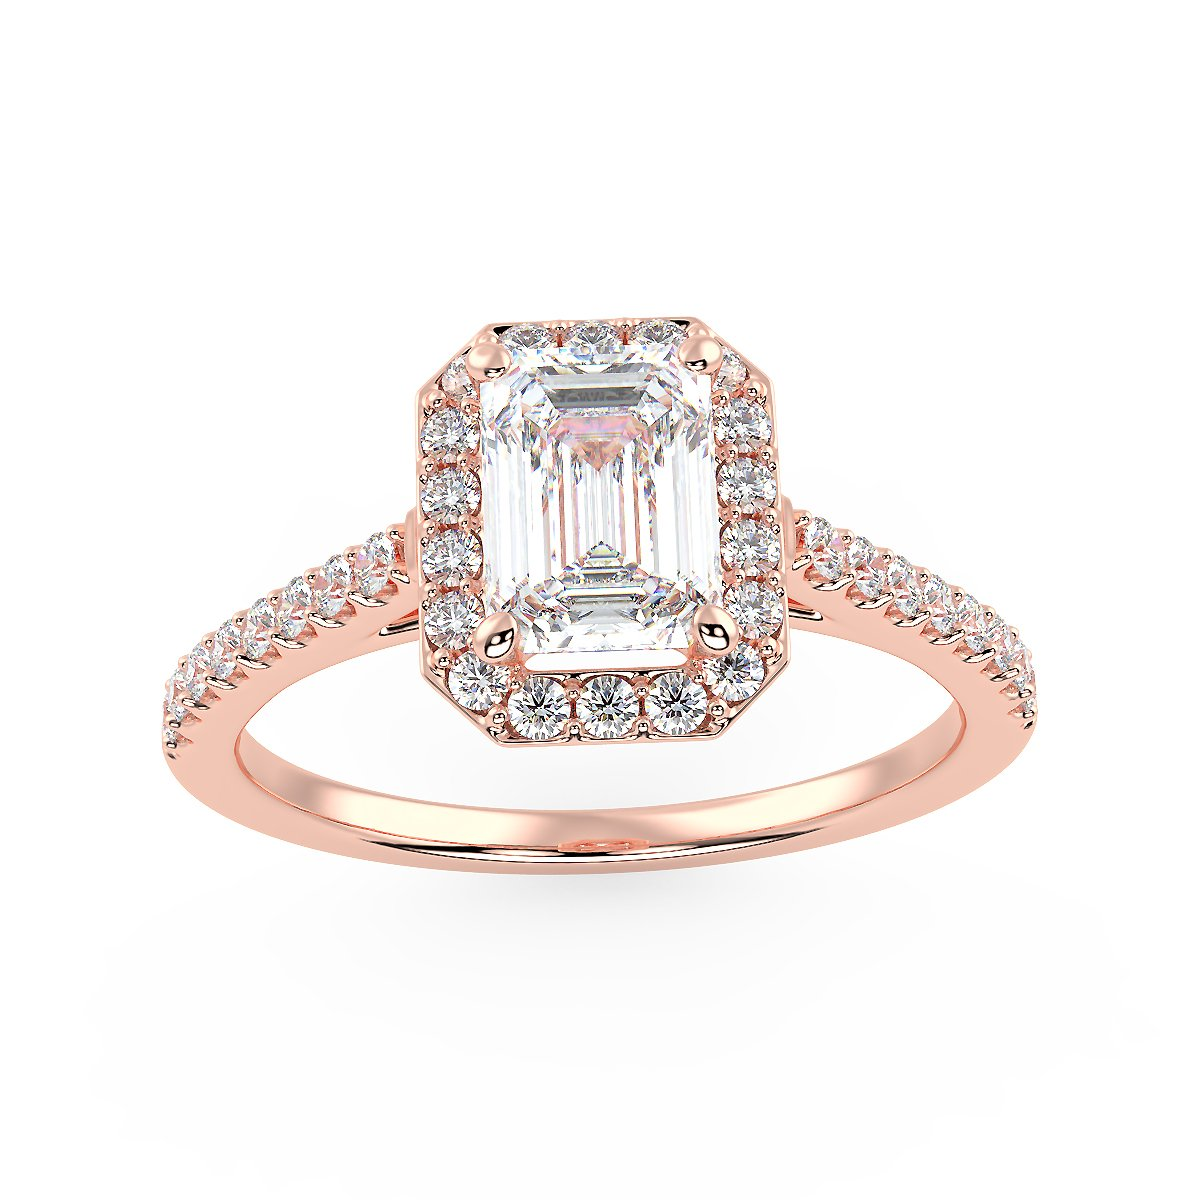 Neptune Engagement Ring in Rose Gold